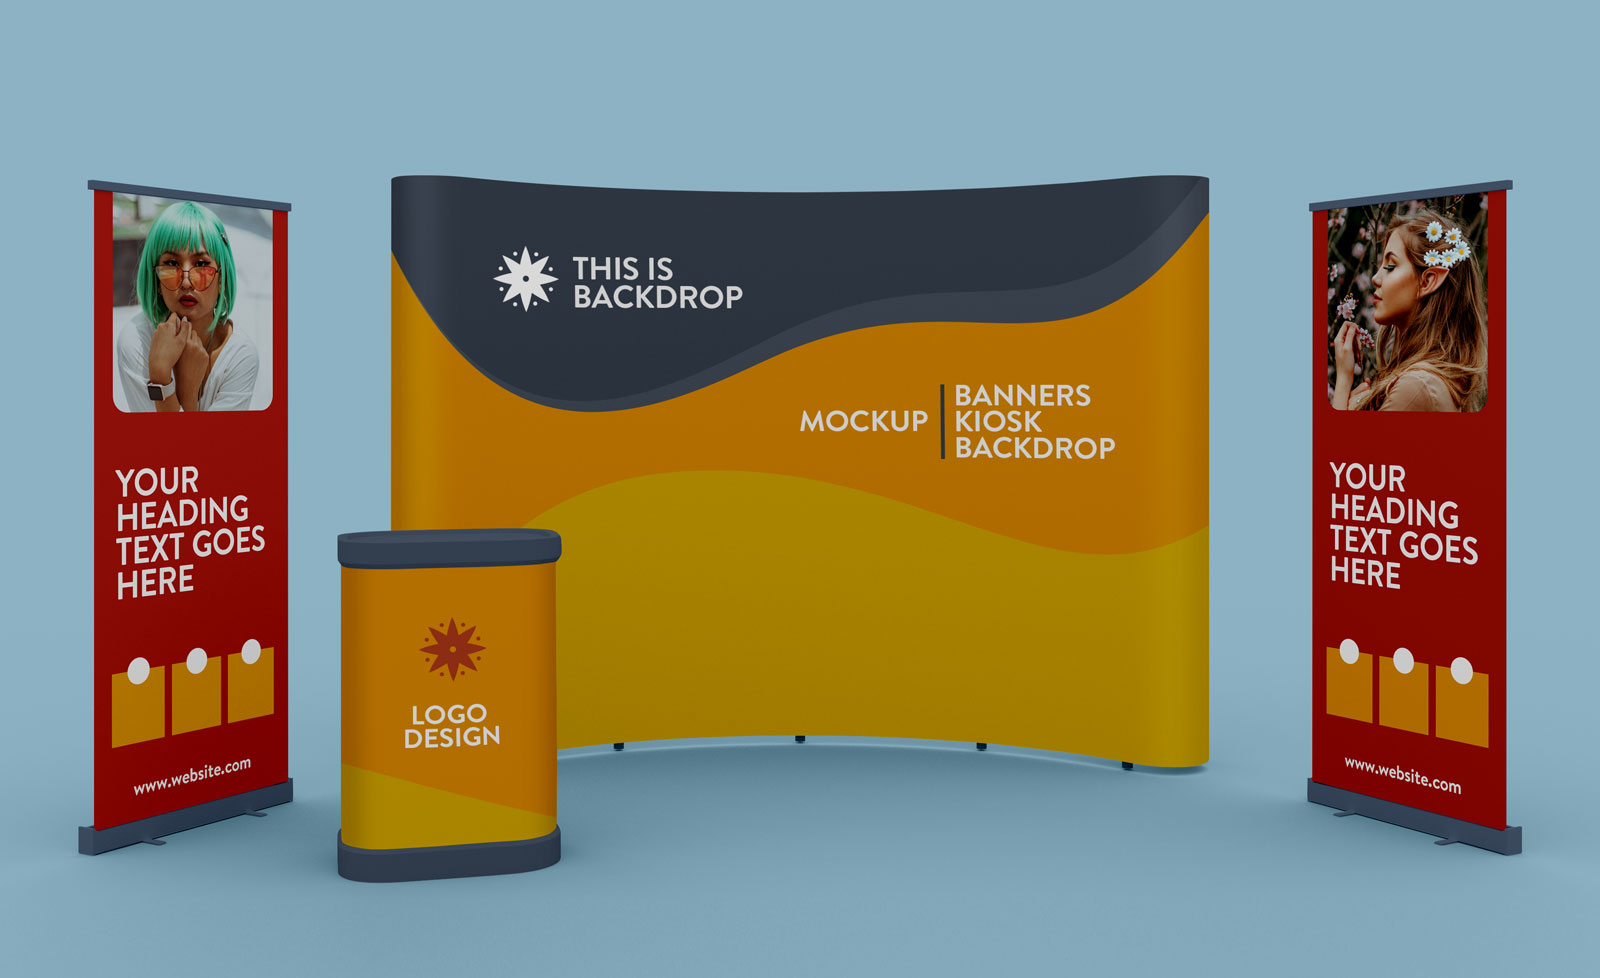 Free Exhibition Trade Show Standing Banner, Booth & Backdrop Mockup PSD